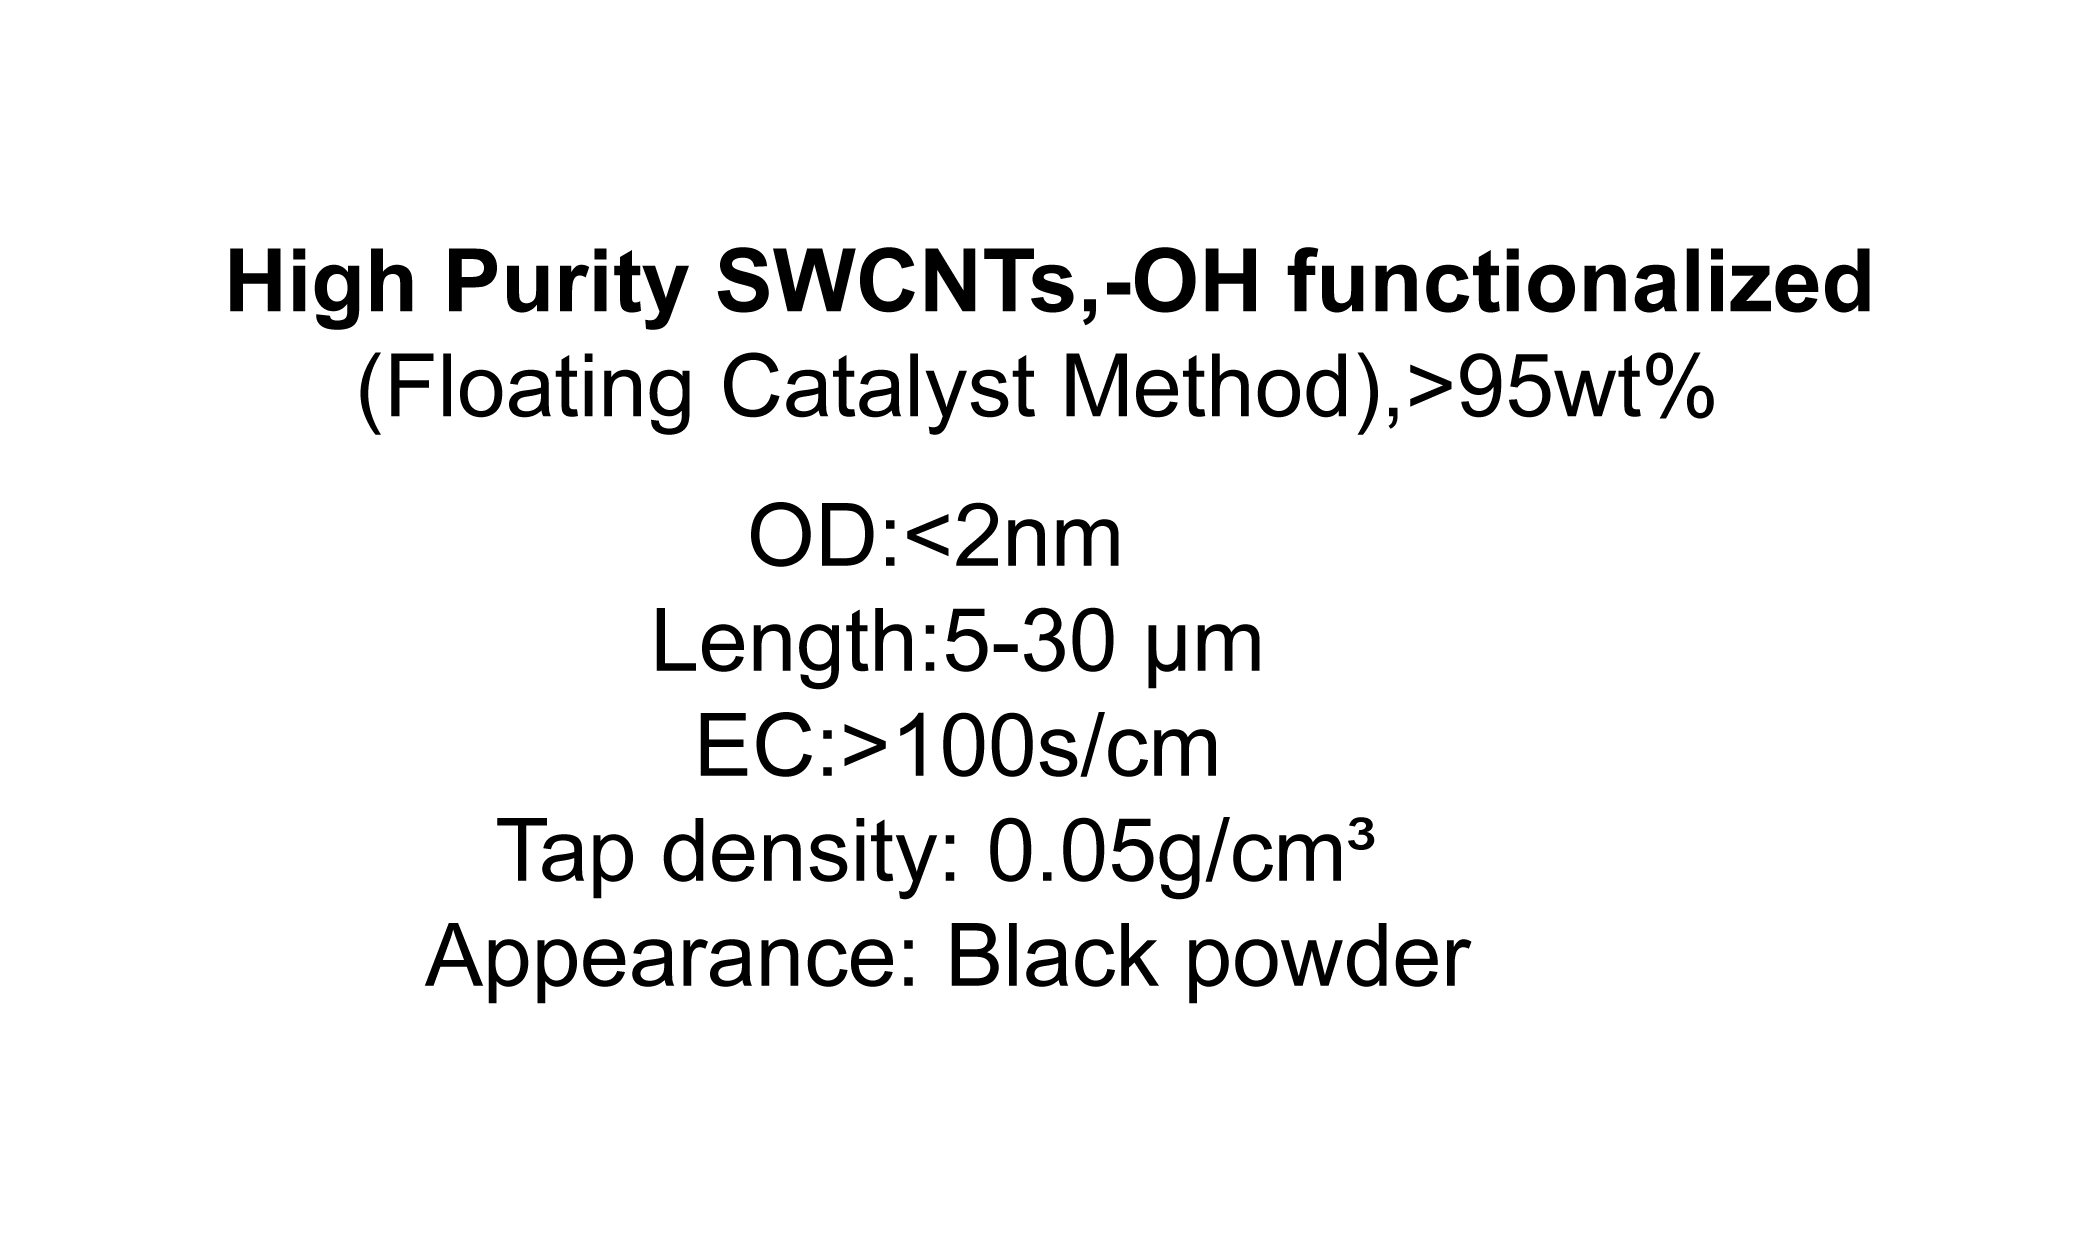 High Purity SWCNTs,-OH functionalized (Floating Catalyst Method),>95wt%